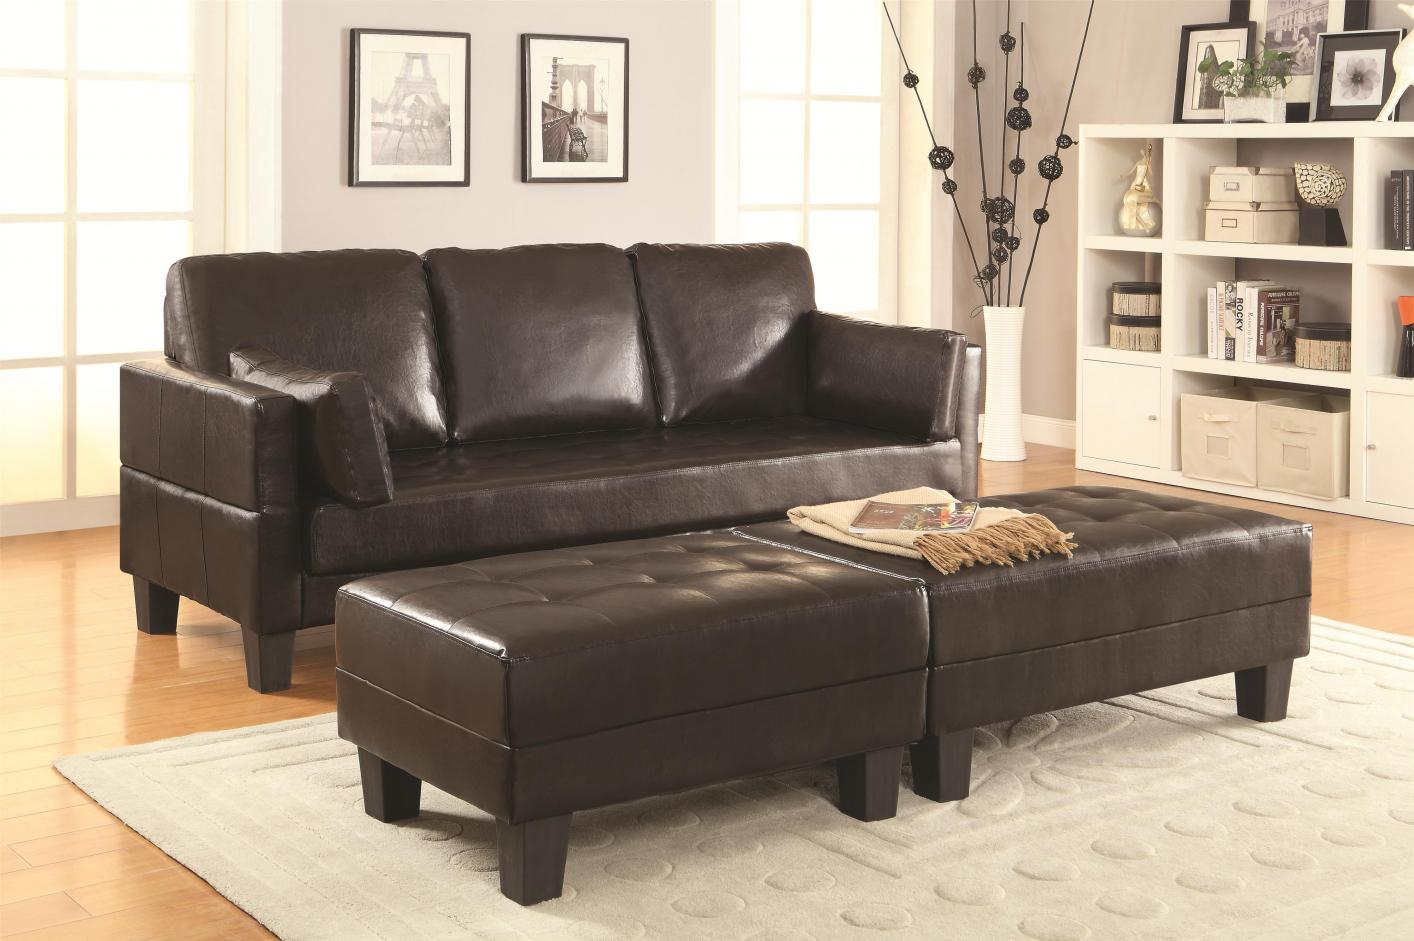 bed and sofa set sectional sofas under 300 brown leather ottoman steal a